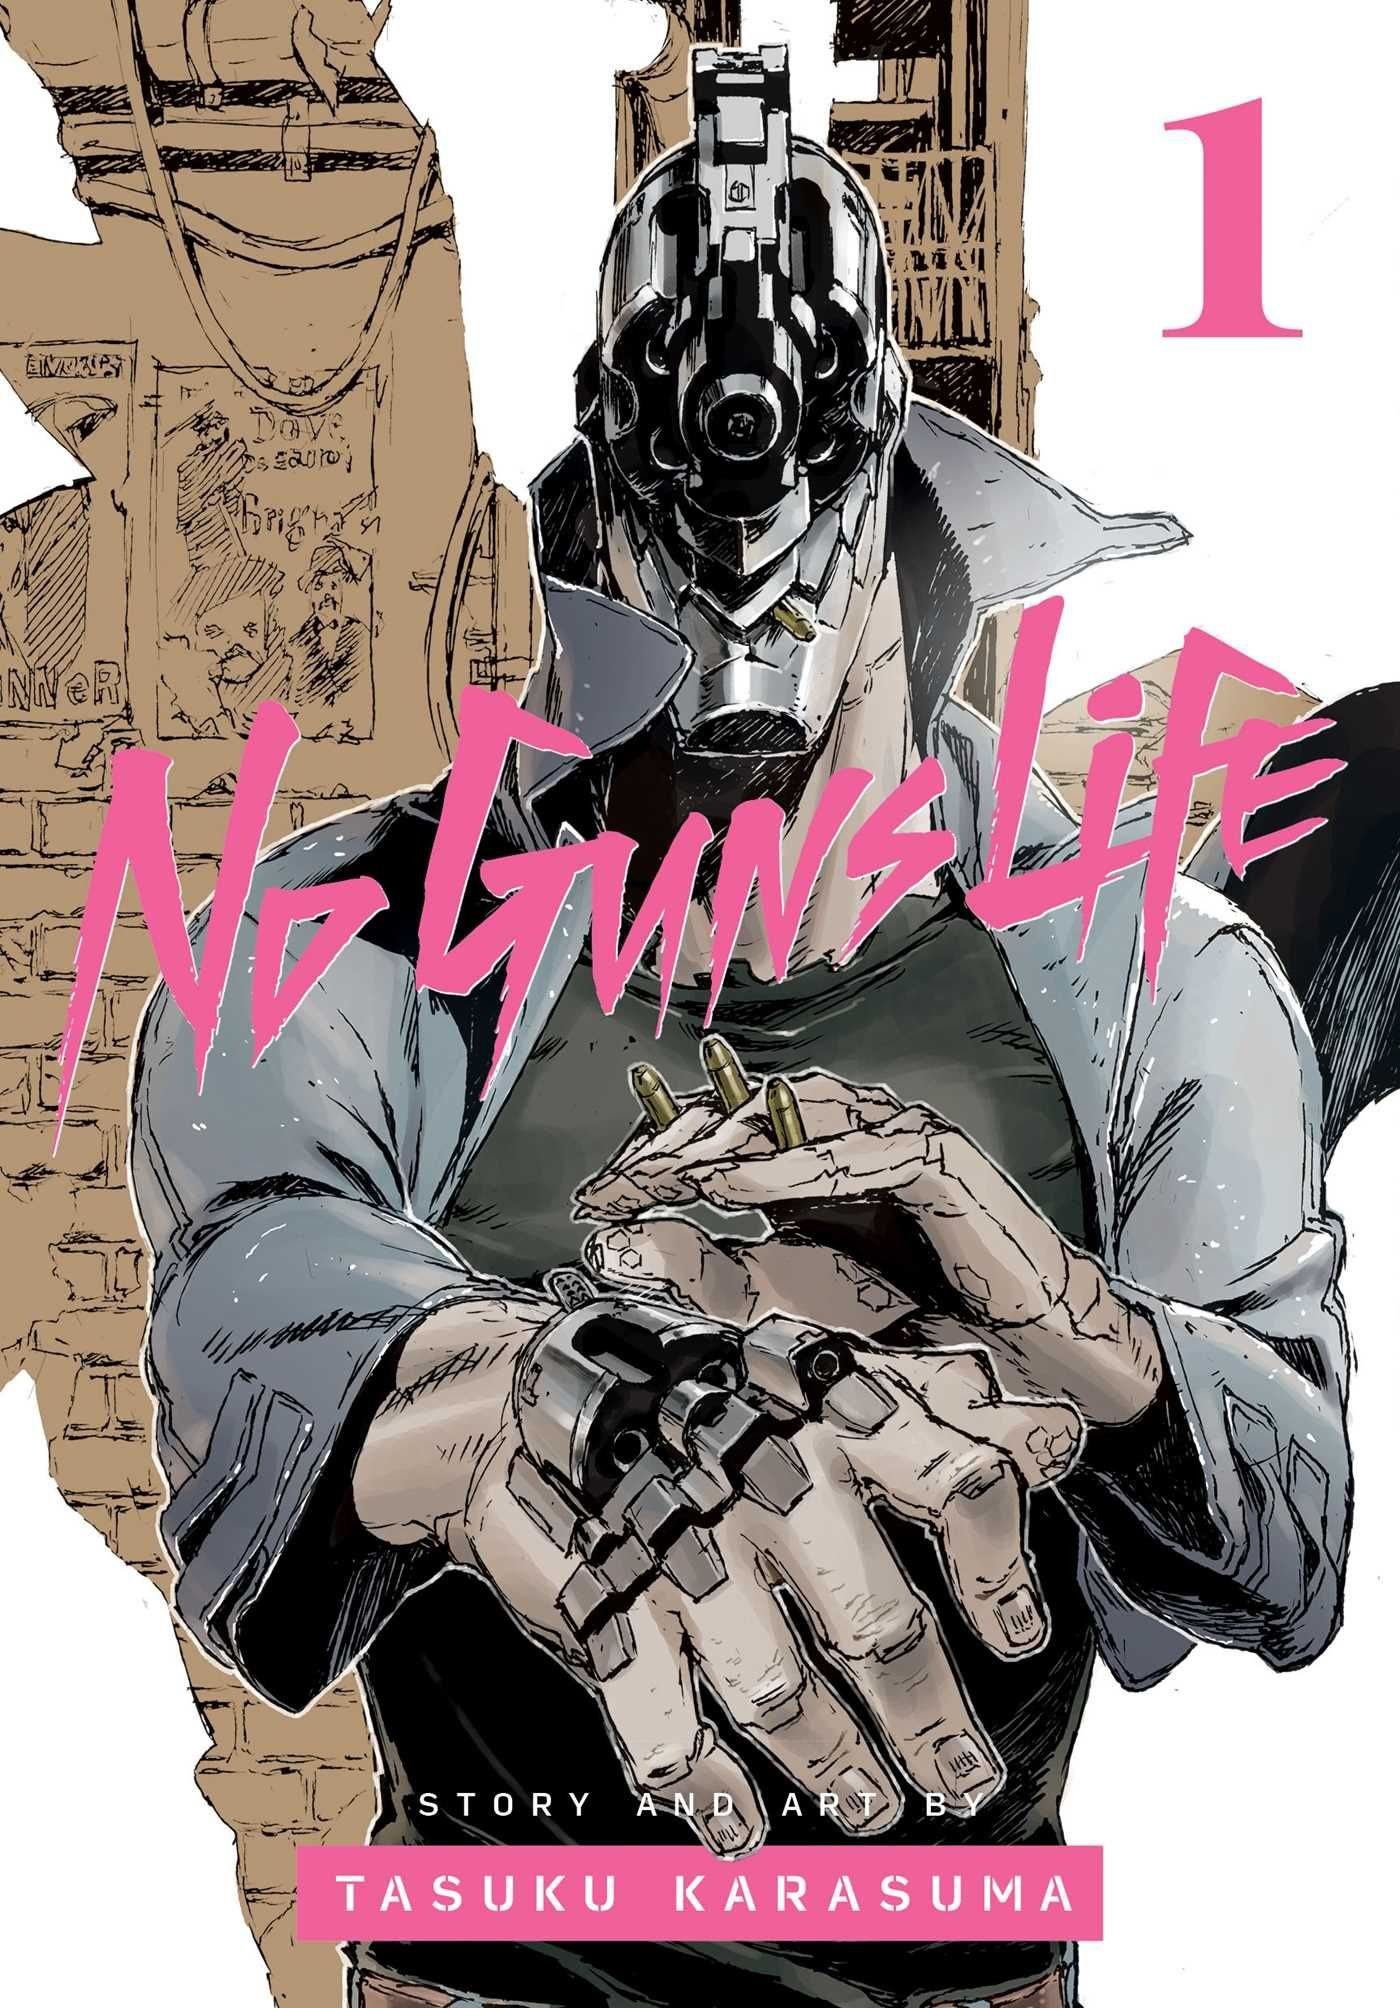 REVIEW: No Guns Life Vol. 1 Isn't As Cool As It Looks | CBR